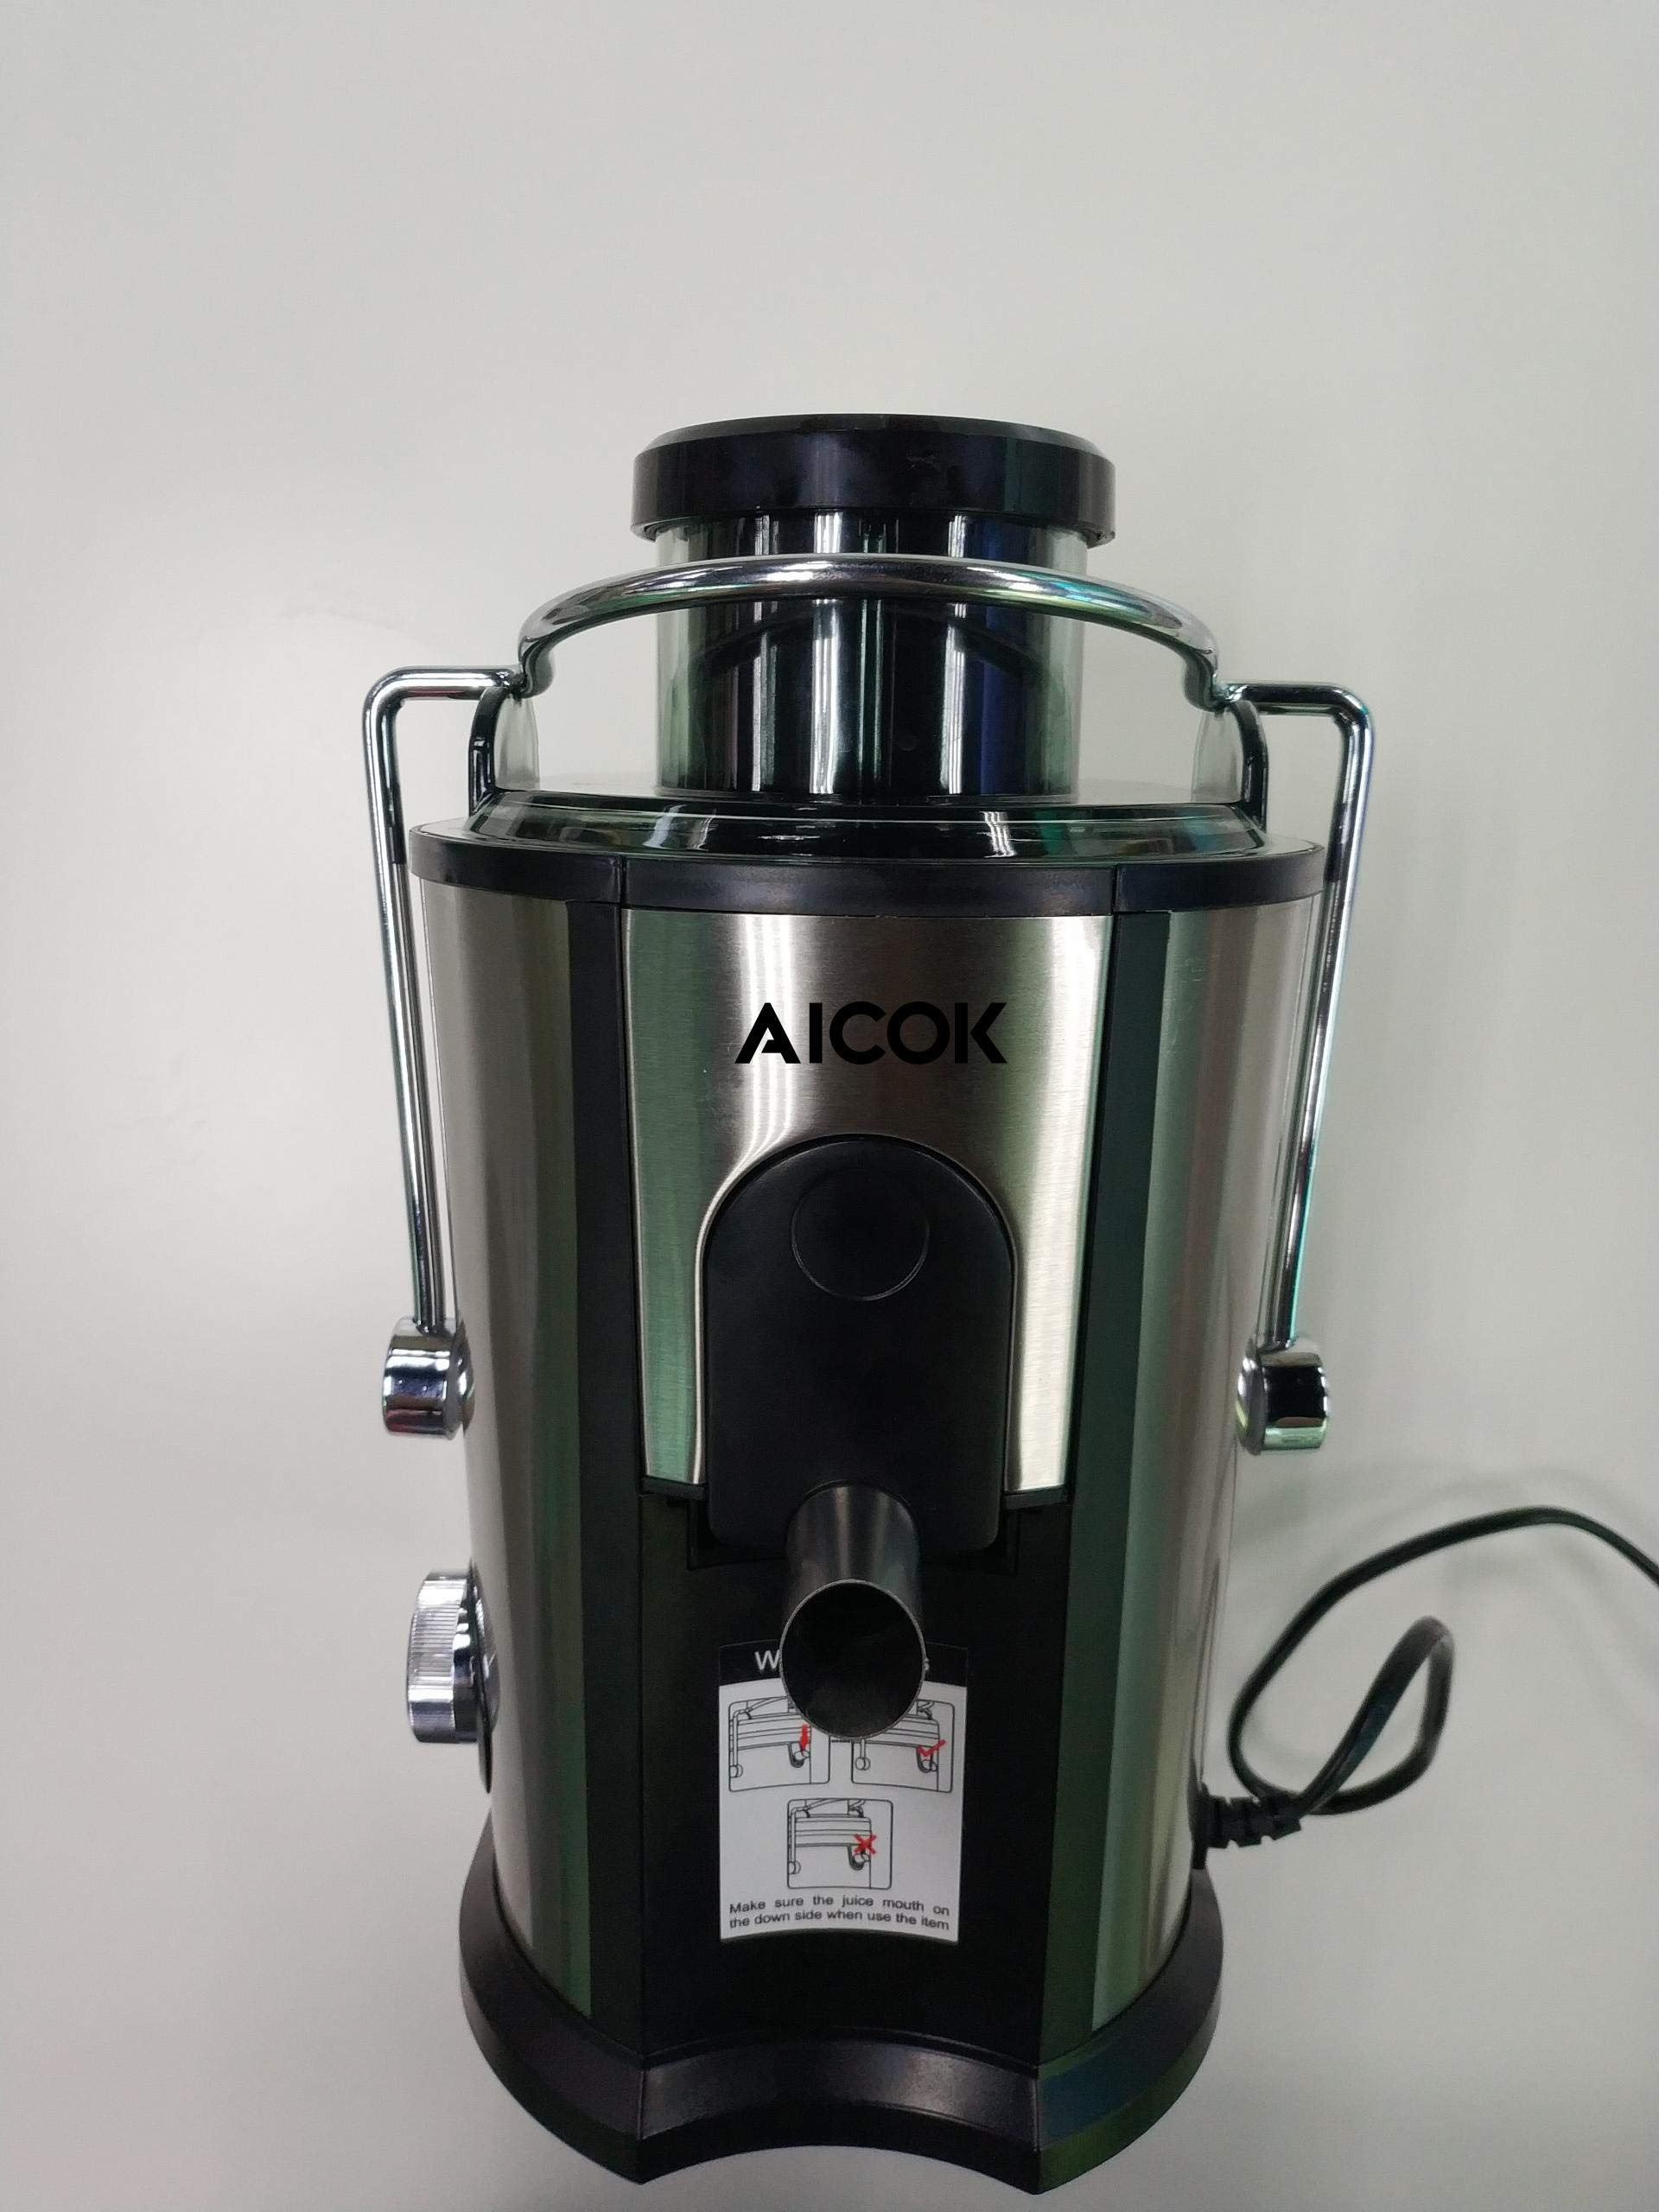 AICOK Juicer Juice Extractor, Wide Mouth Centrifugal Juicer BPA Free Food Grade Stainless Steel Dual Speed Setting Juicer Machine with Anti-drip Function for Fruits and Vegetables